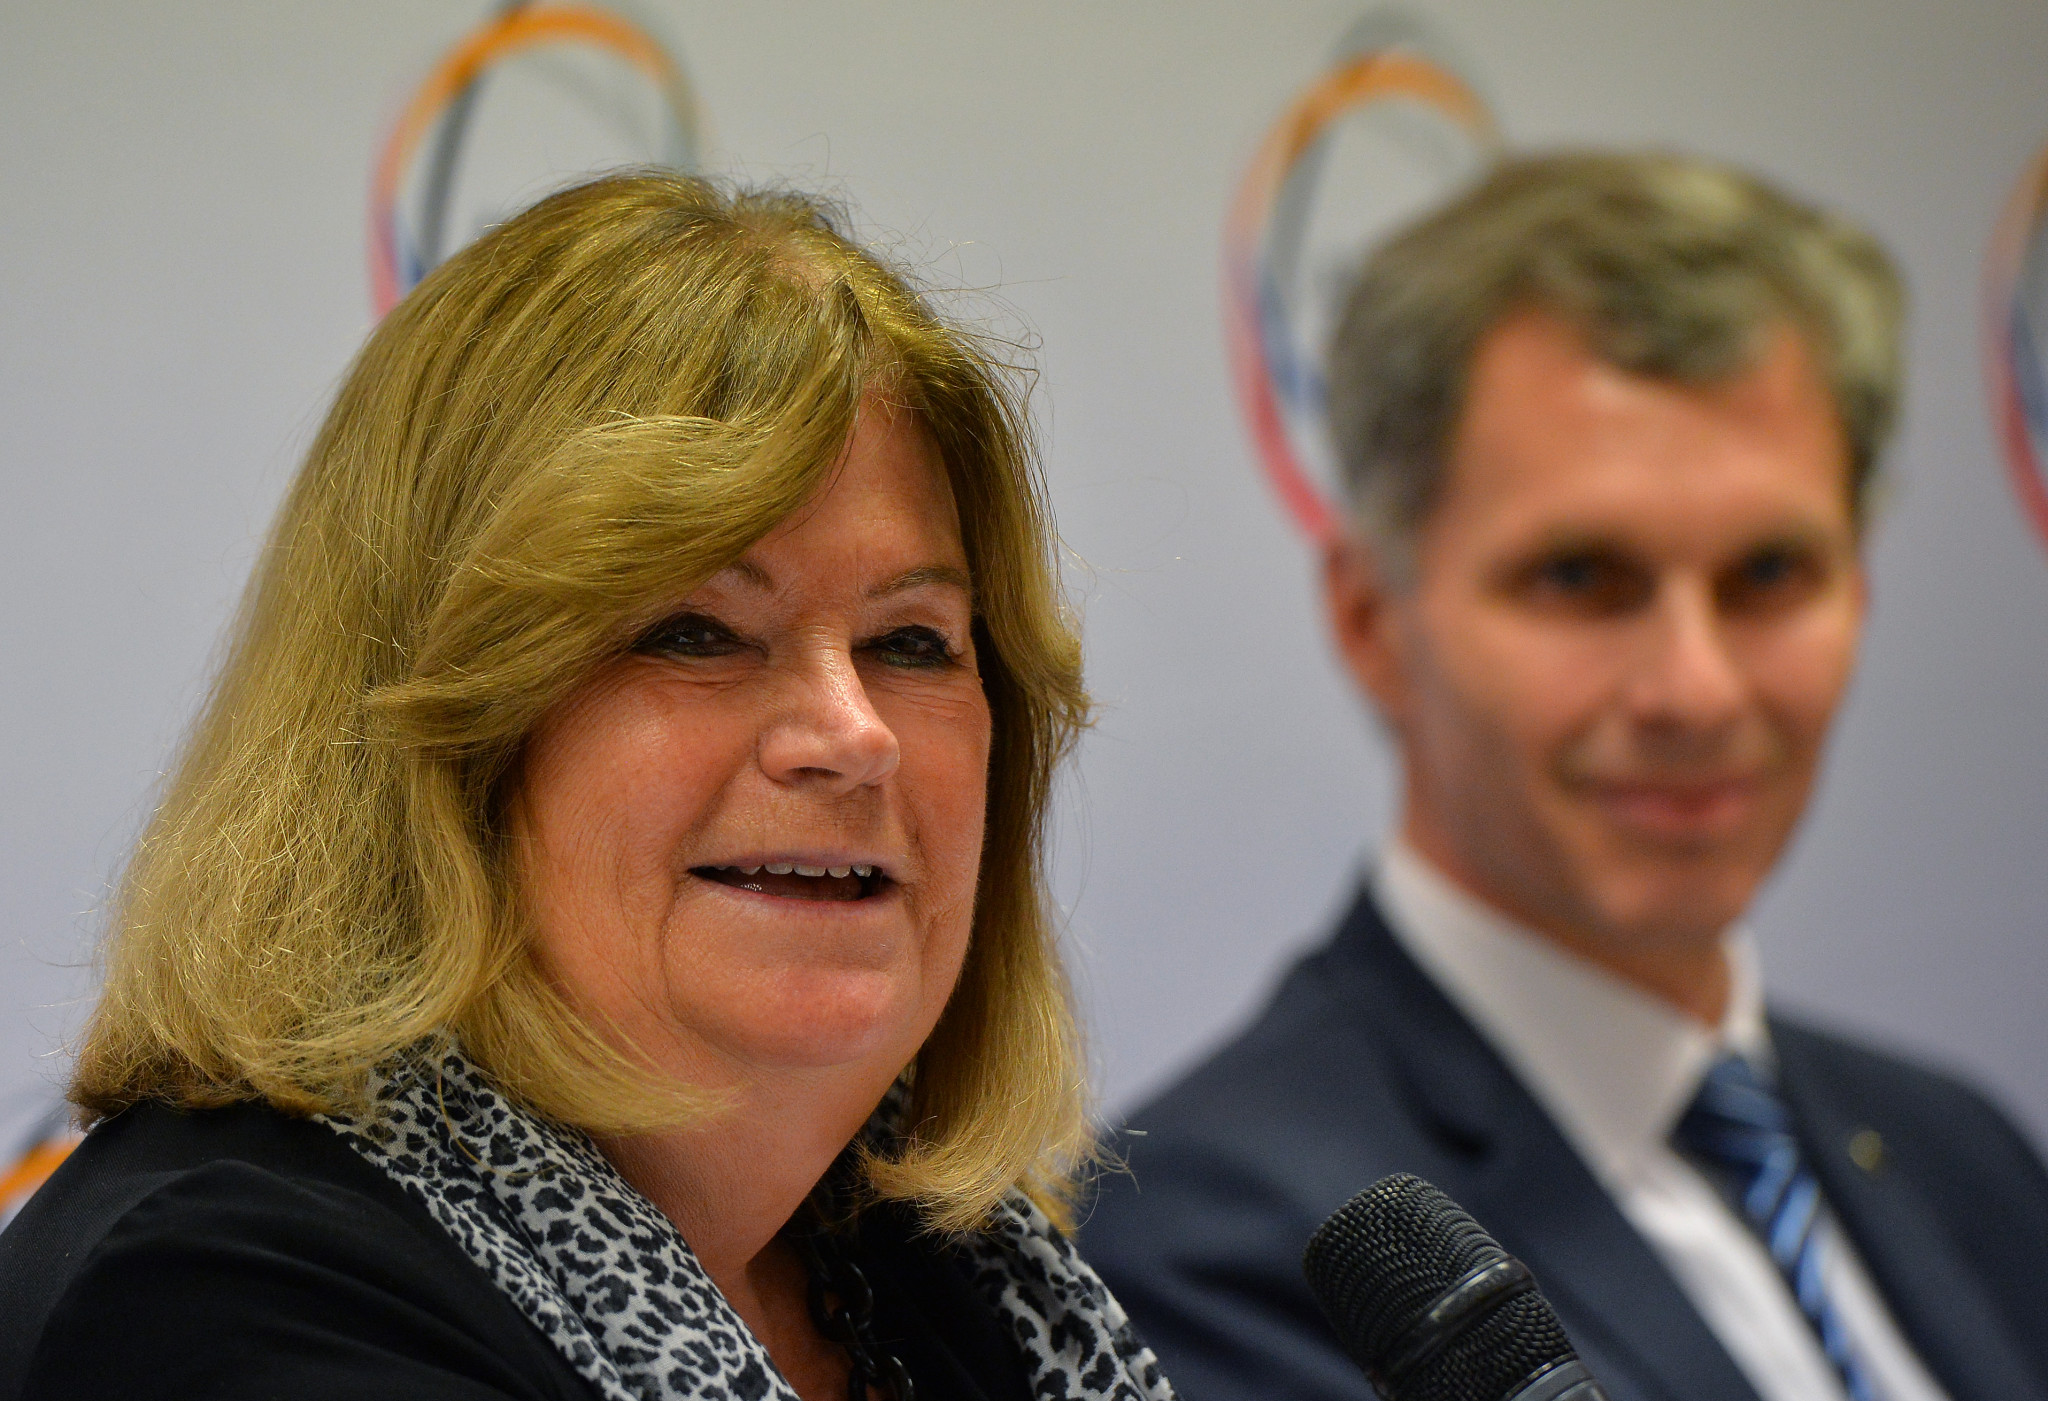 IOC coordination commission Chairman Gunilla Lindberg remains confident the Games will be memorable  for athletes and fans alike ©Getty Images